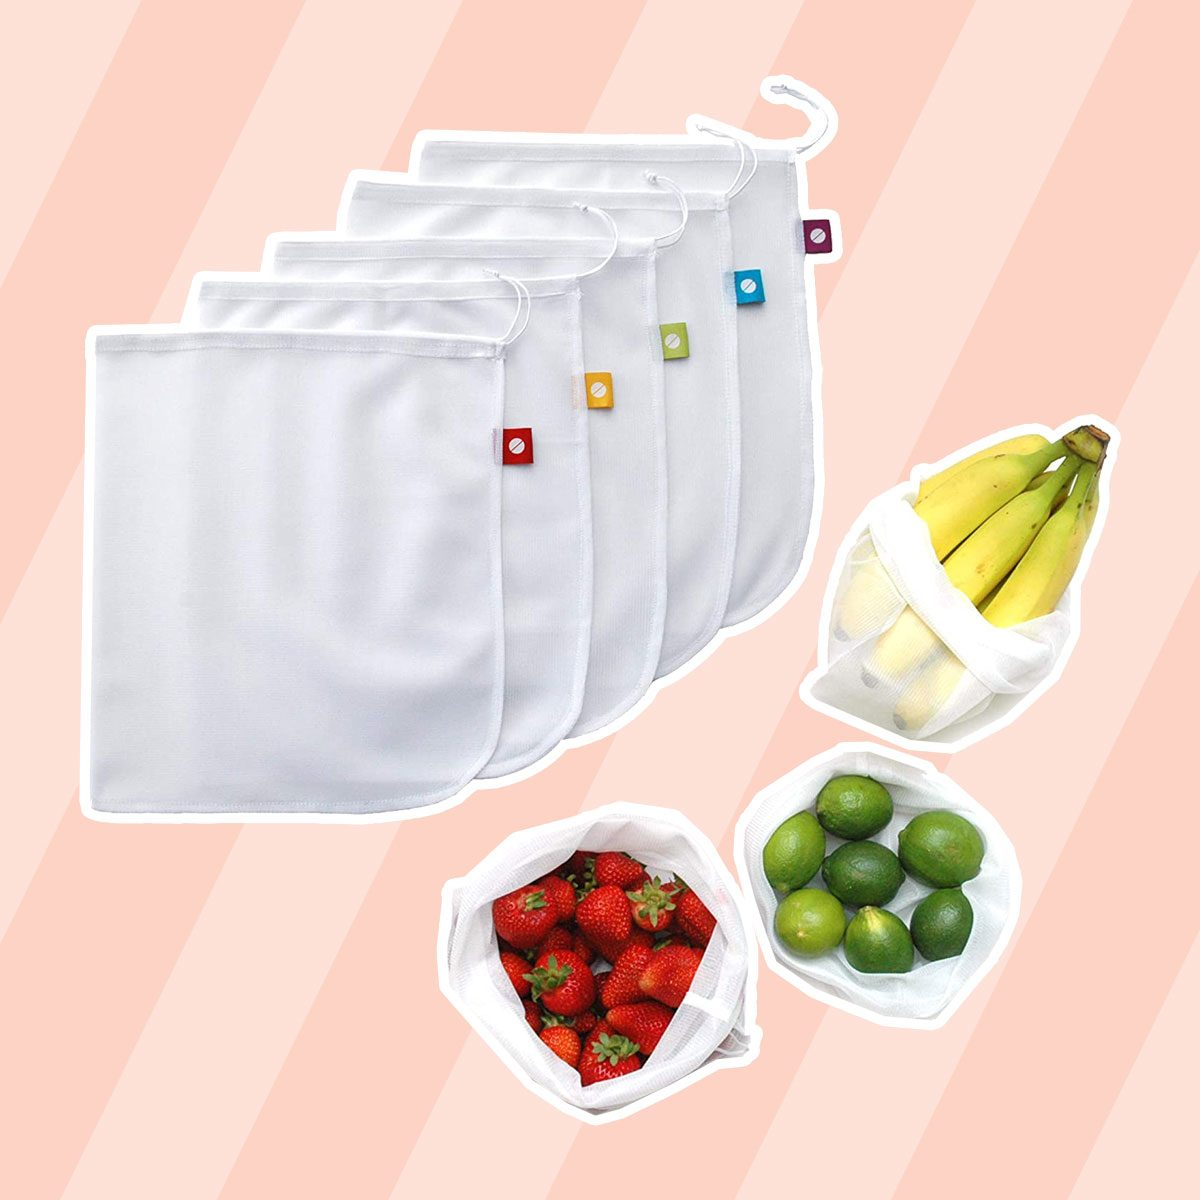 Reusable Produce Bags, Washable Mesh Bags for Fruits and Vegetables, Set of 5 - Flip and Tumble